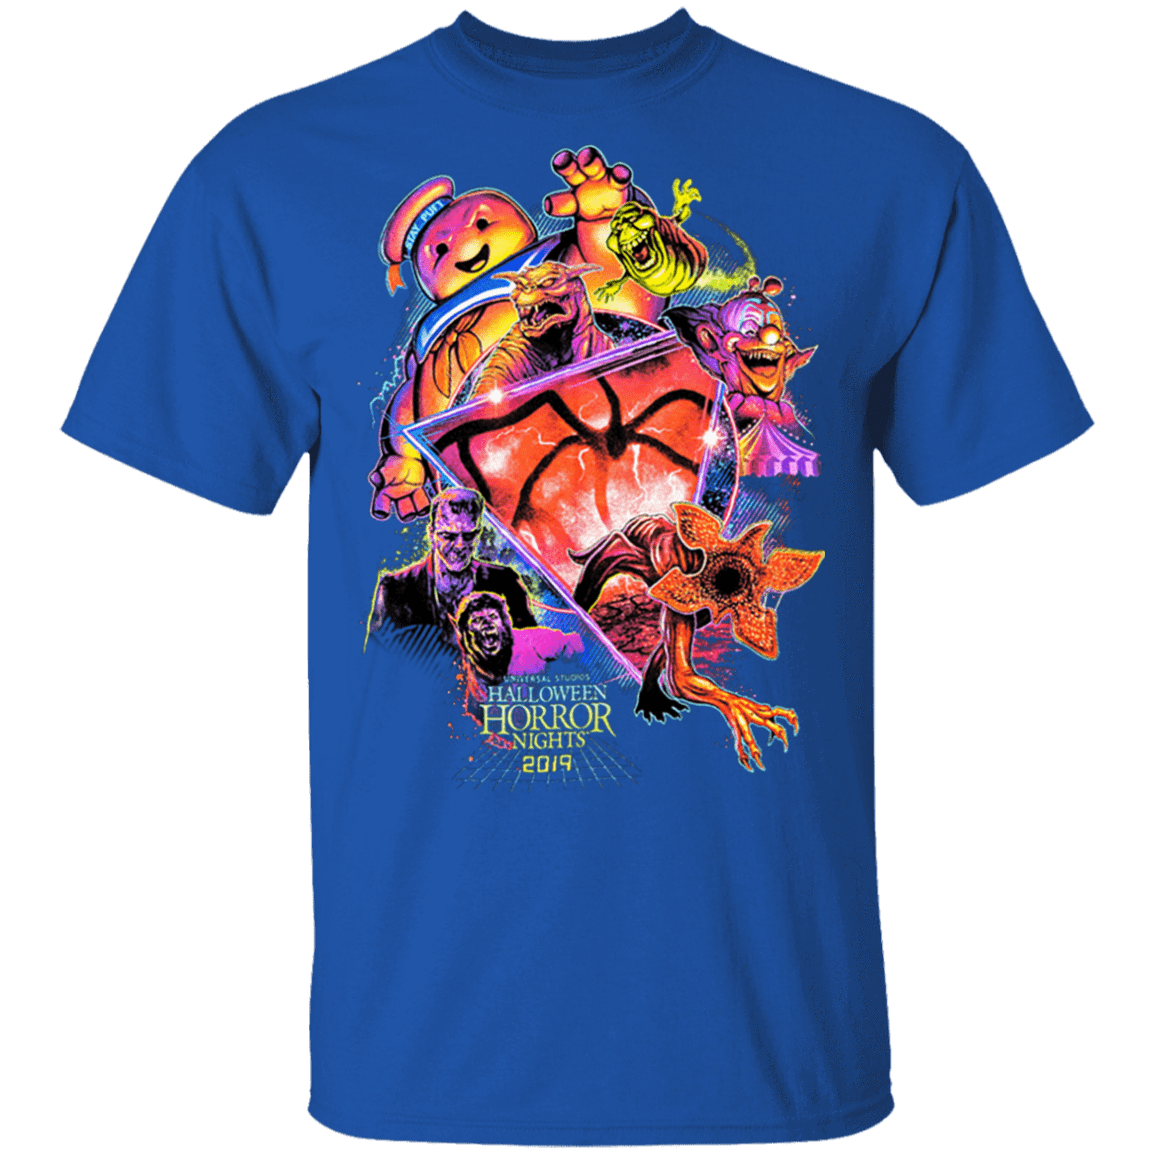 Halloween Horror Nights 2019 T-Shirts, Hoodies 1049-9971-82205247-48286 - Tee Ript